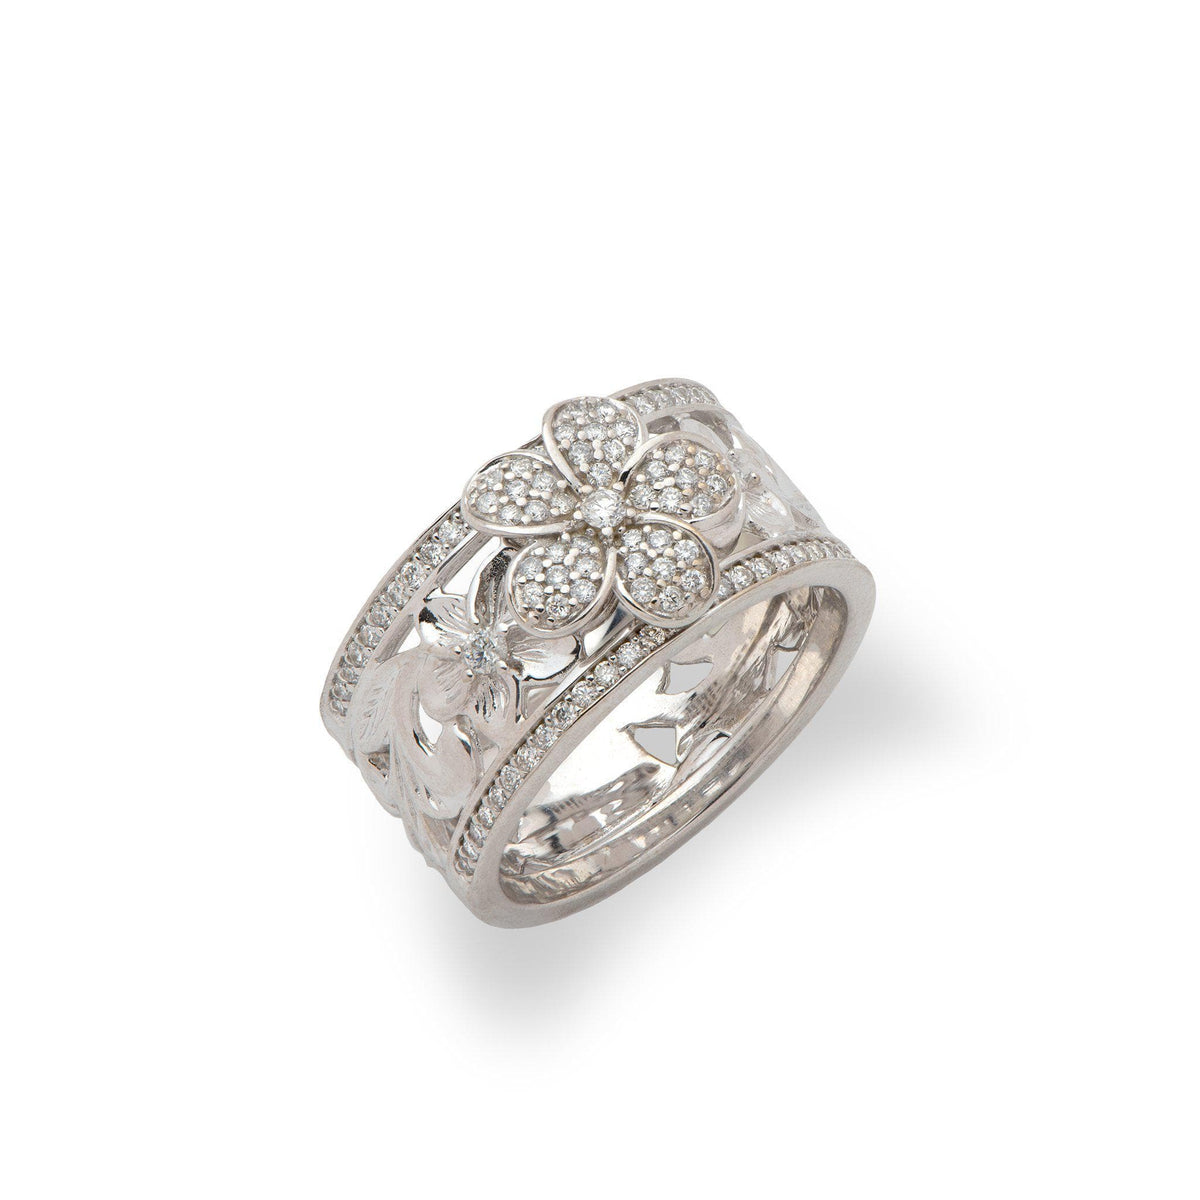 Hawaiian Heirloom Plumeria Pave Scroll (10mm) Ring in 14K White Gold with Diamonds